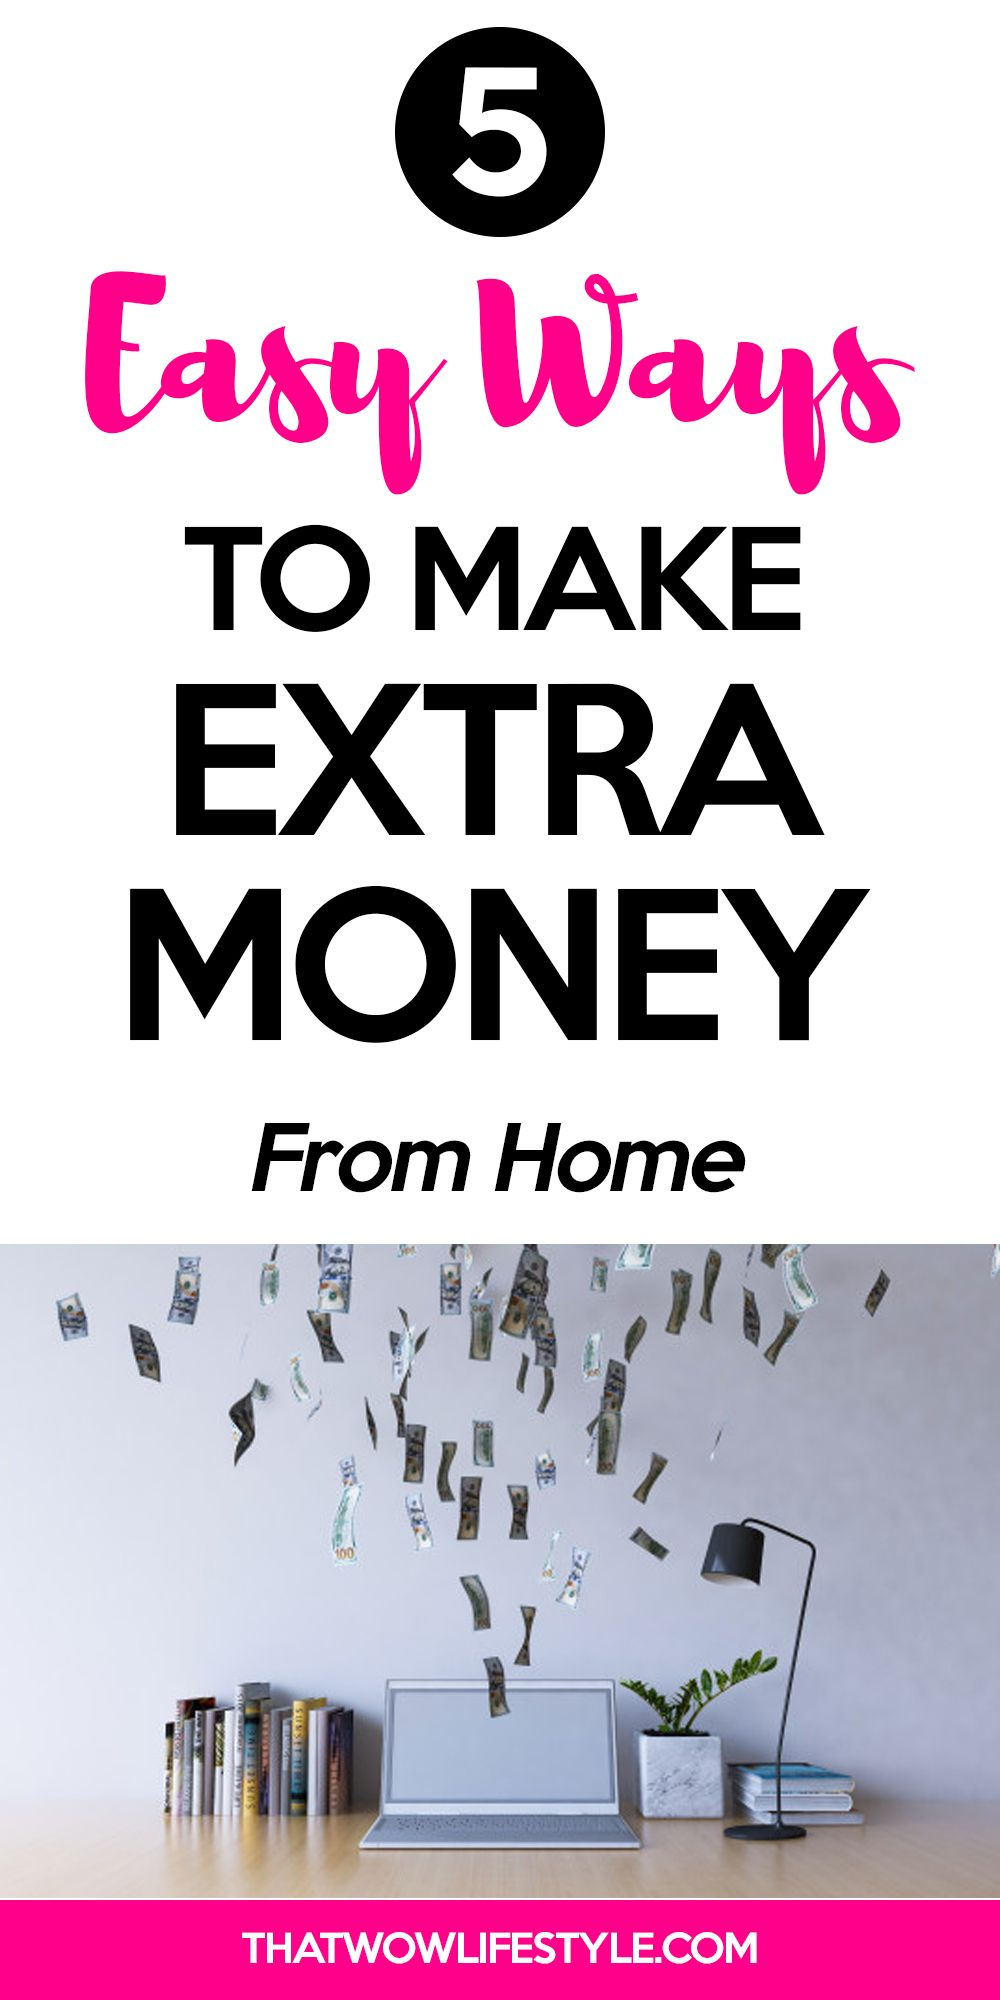 Easy Ways To Make Extra Cash From Home In 2020 Making